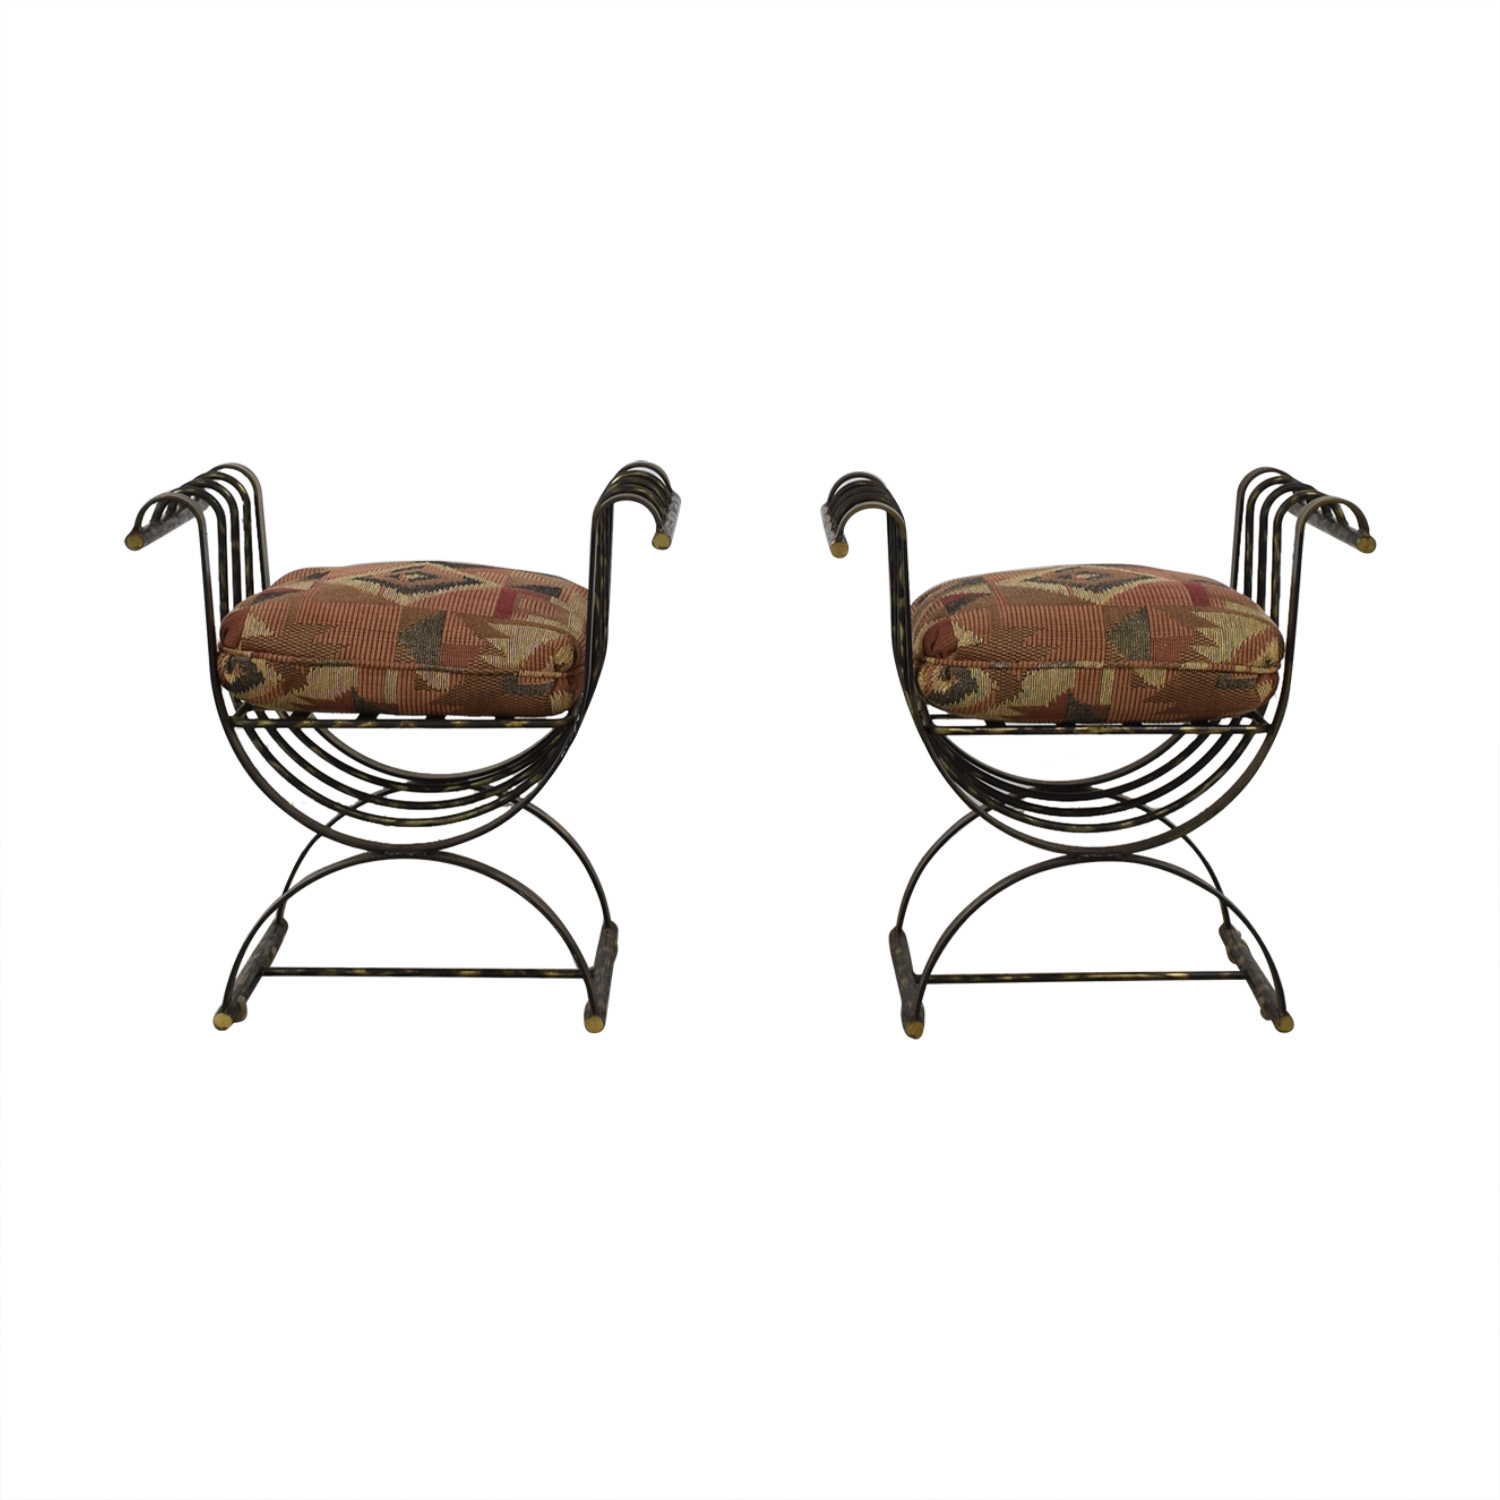 shop Wrought Iron Decorative Seats